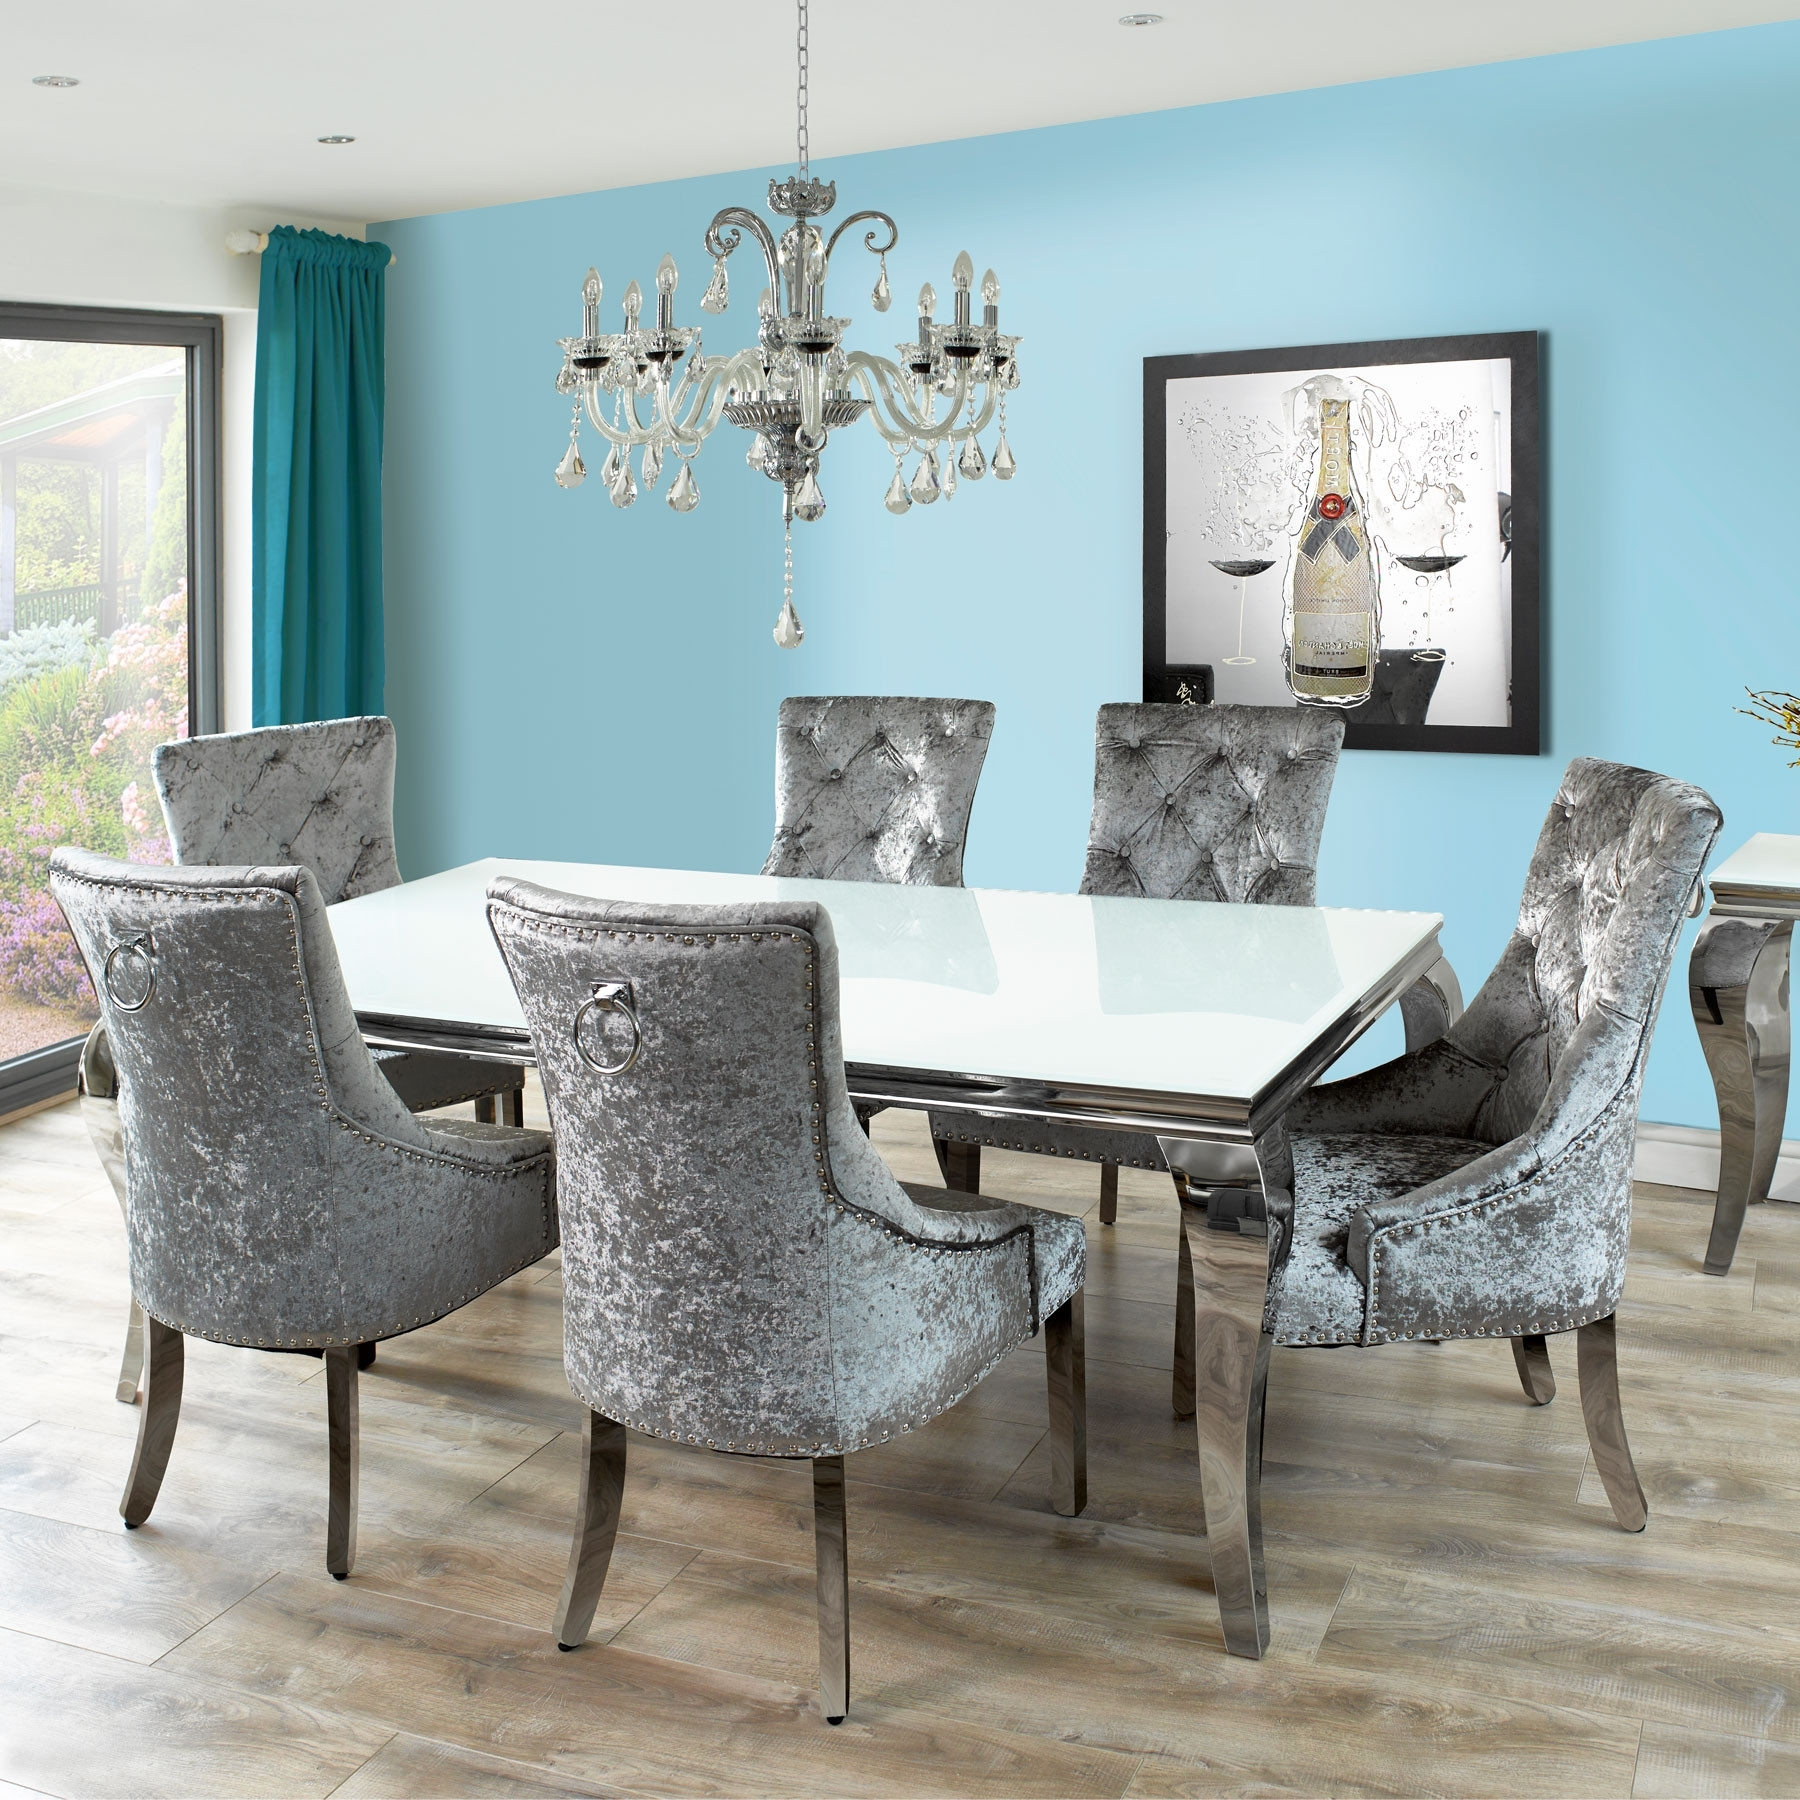 Chrome Dining Room Chairs Inside 2018 Superb Silver Dining Room Chairs – Esescatrina (Gallery 16 of 25)